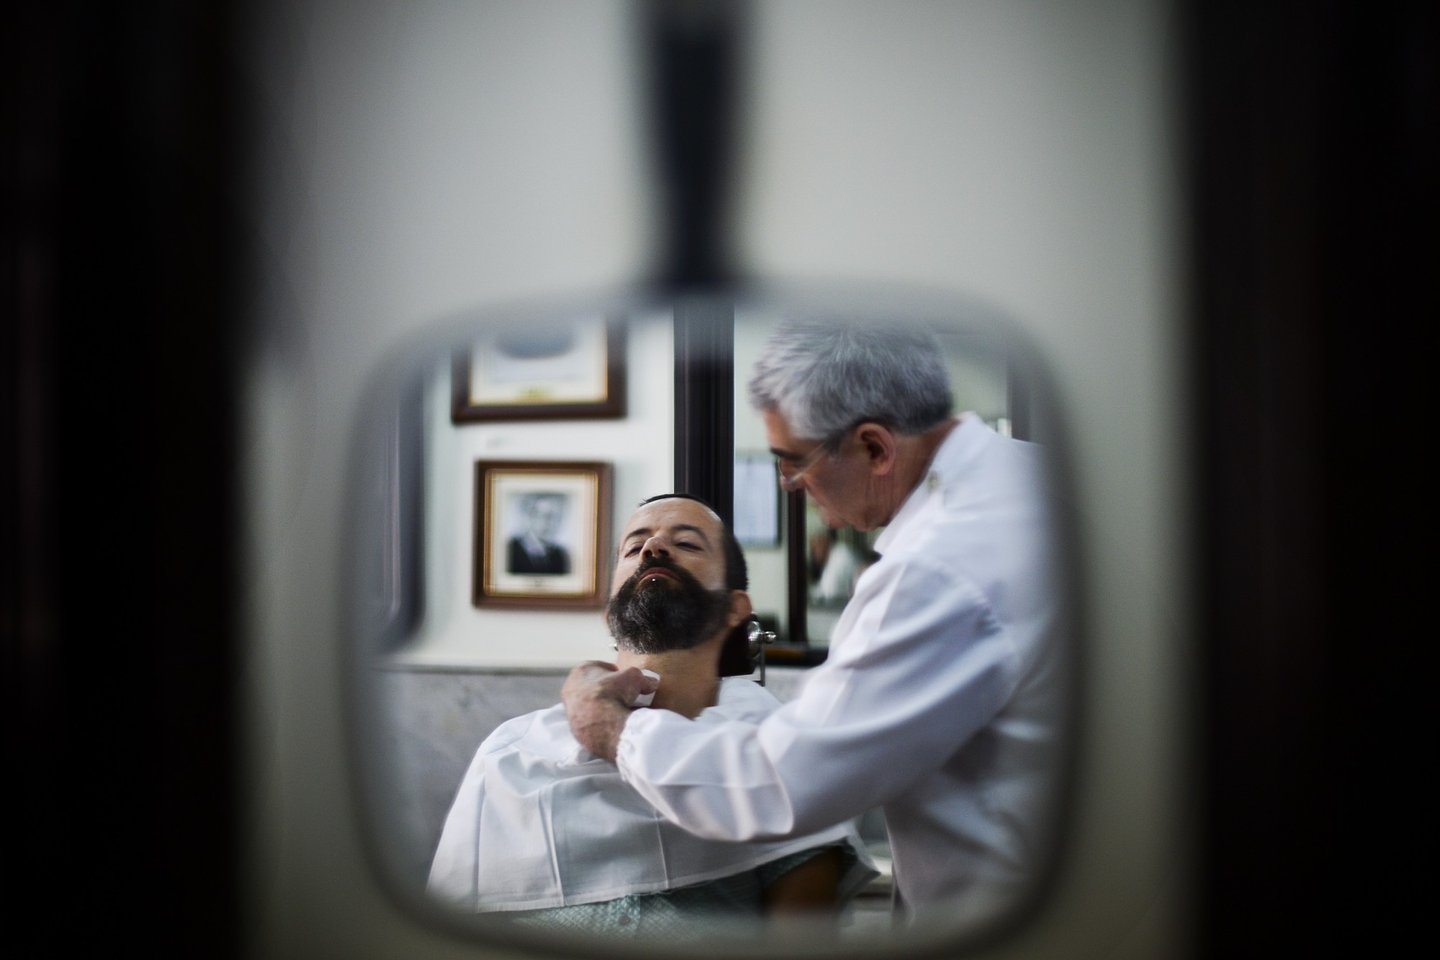 "A barber shaves the beard of a customer at the barber shop ""Barbearia Campos"", open since 1886, in Lisbon on July 16, 2013. AFP PHOTO/ PATRICIA DE MELO MOREIRA (Photo credit should read PATRICIA DE MELO MOREIRA/AFP/Getty Images)"